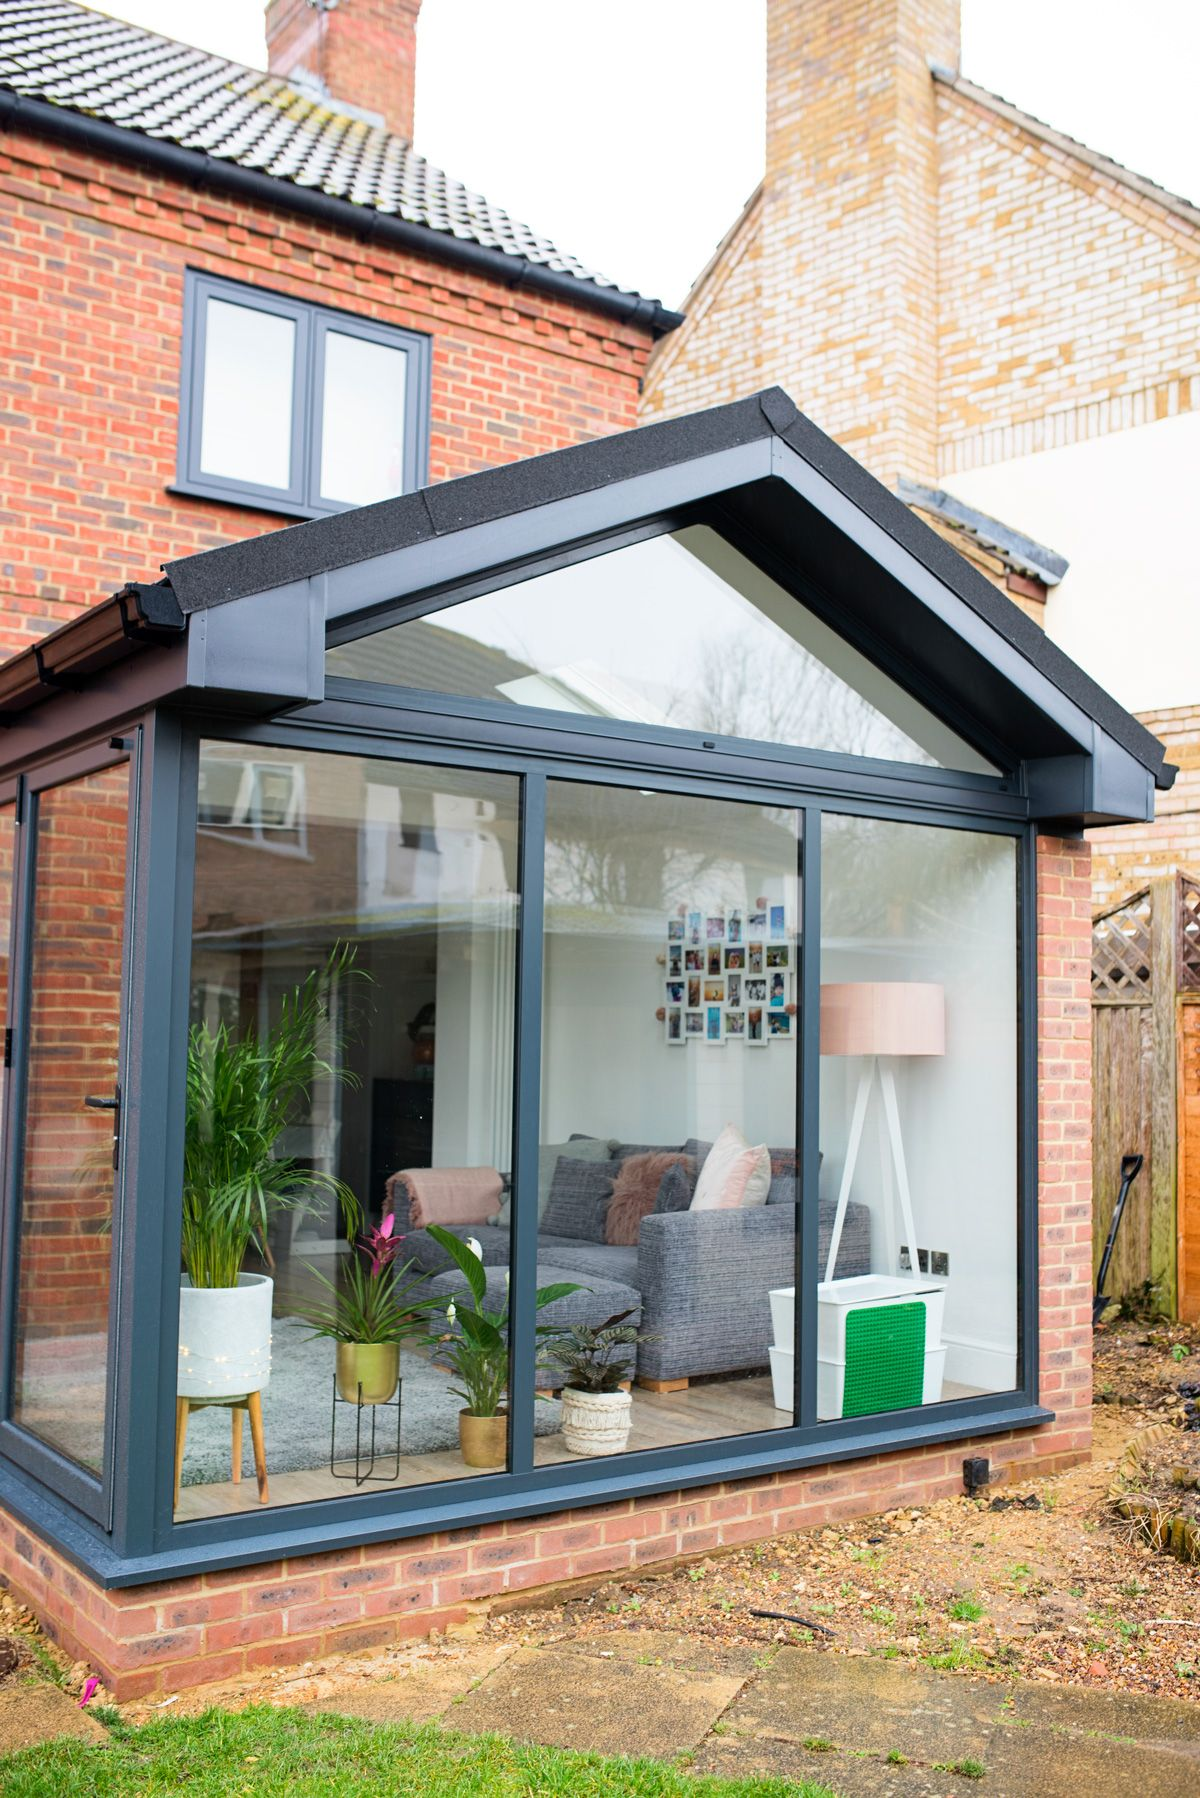 7 Stunning Home Extension Ideas: Our Modern Conservatory Extension- Before And After (Home Renovation Project #5) - M…